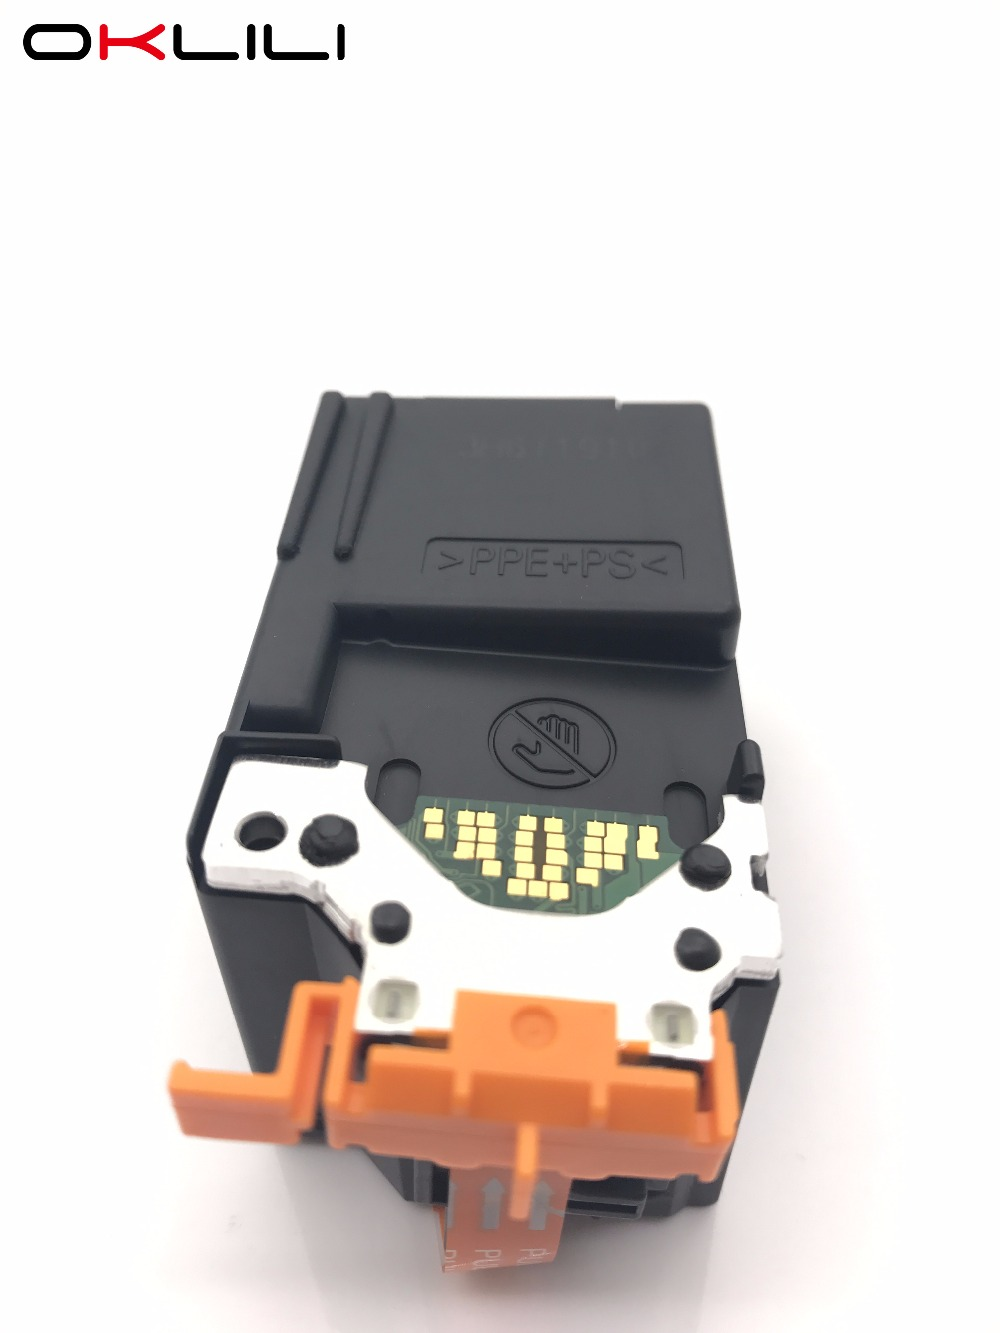 OKLILI ORIGINAL NEW QY6-0038 QY6-0038-000 Printhead Print Head Printer Head for Canon BJ S200 S200x S200SP S200SPx high quality original print head qy6 0057 printhead compatible for canon ip5000 ip5000r printer head